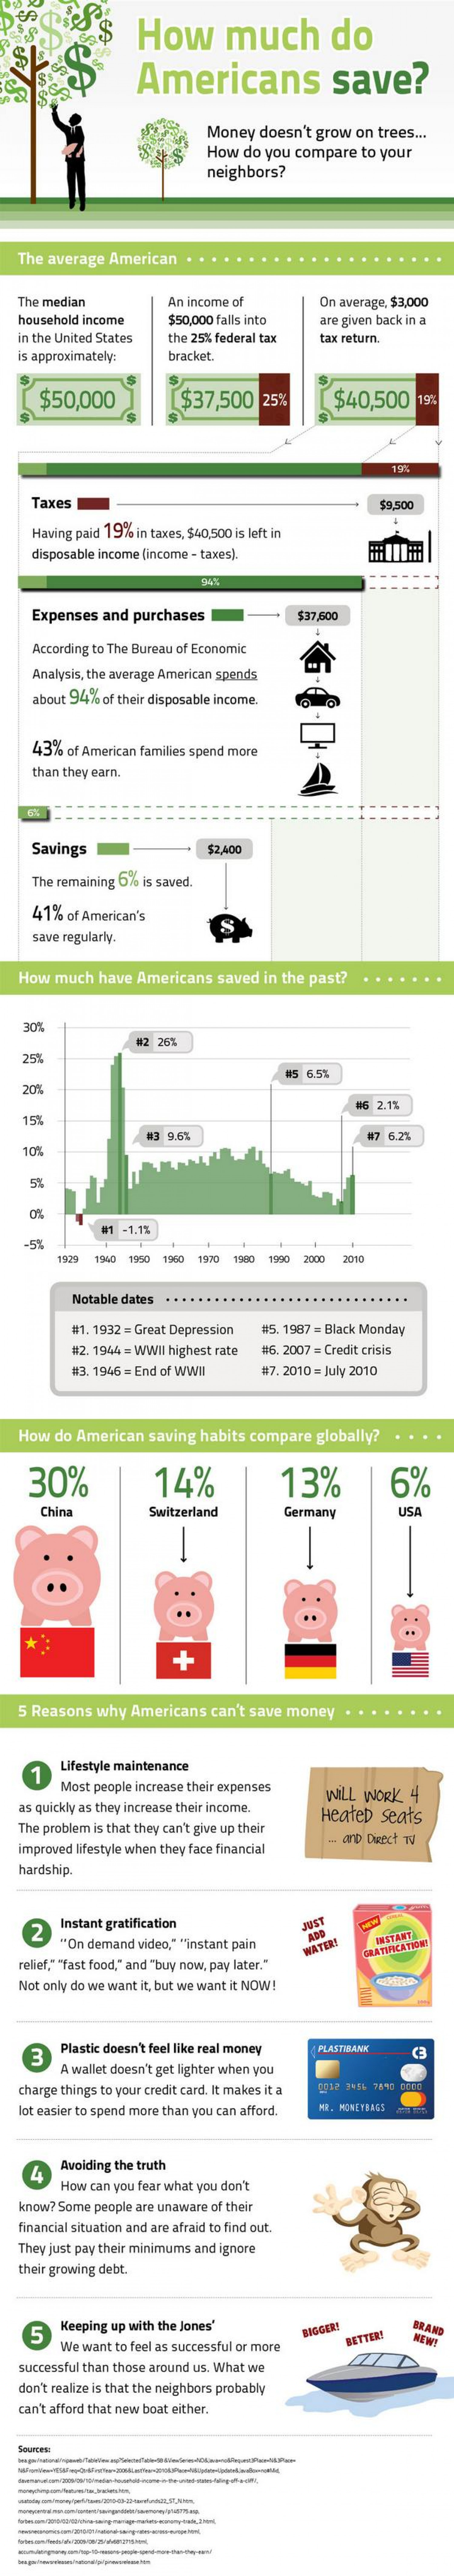 an analysis of the saving habits that americans have